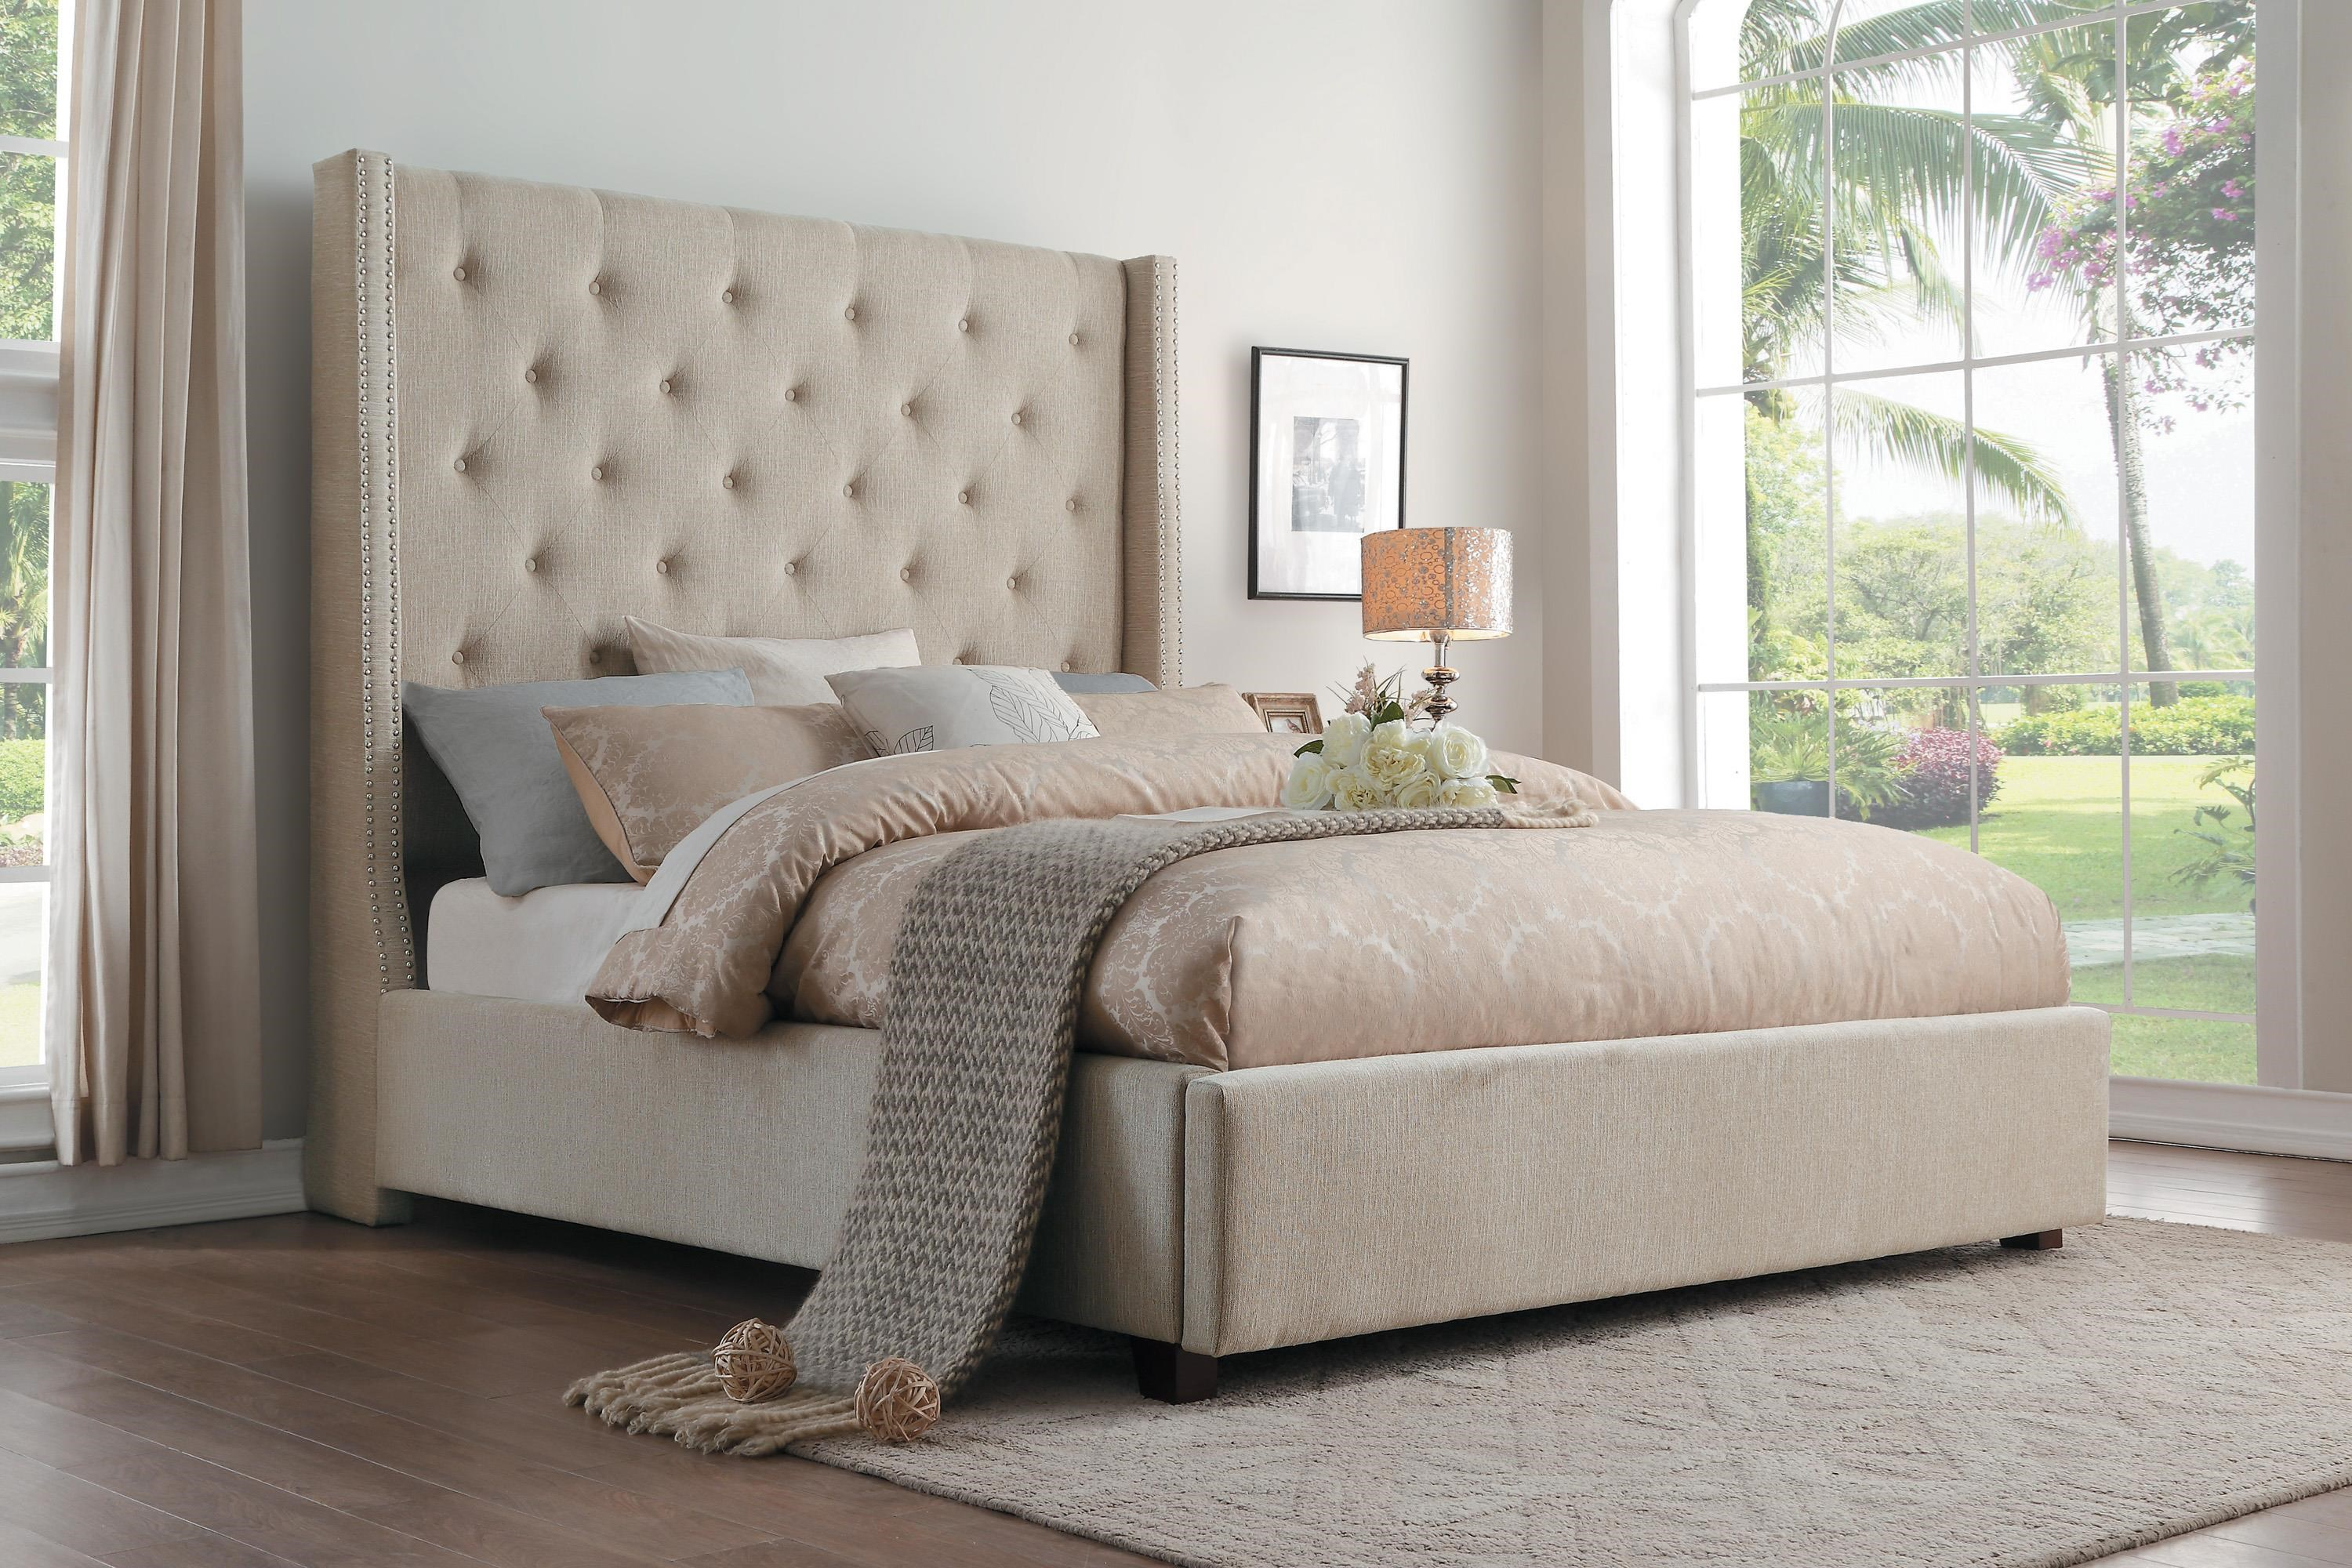 Geneva King Upholstered Bed by Home Style at Walker's Furniture